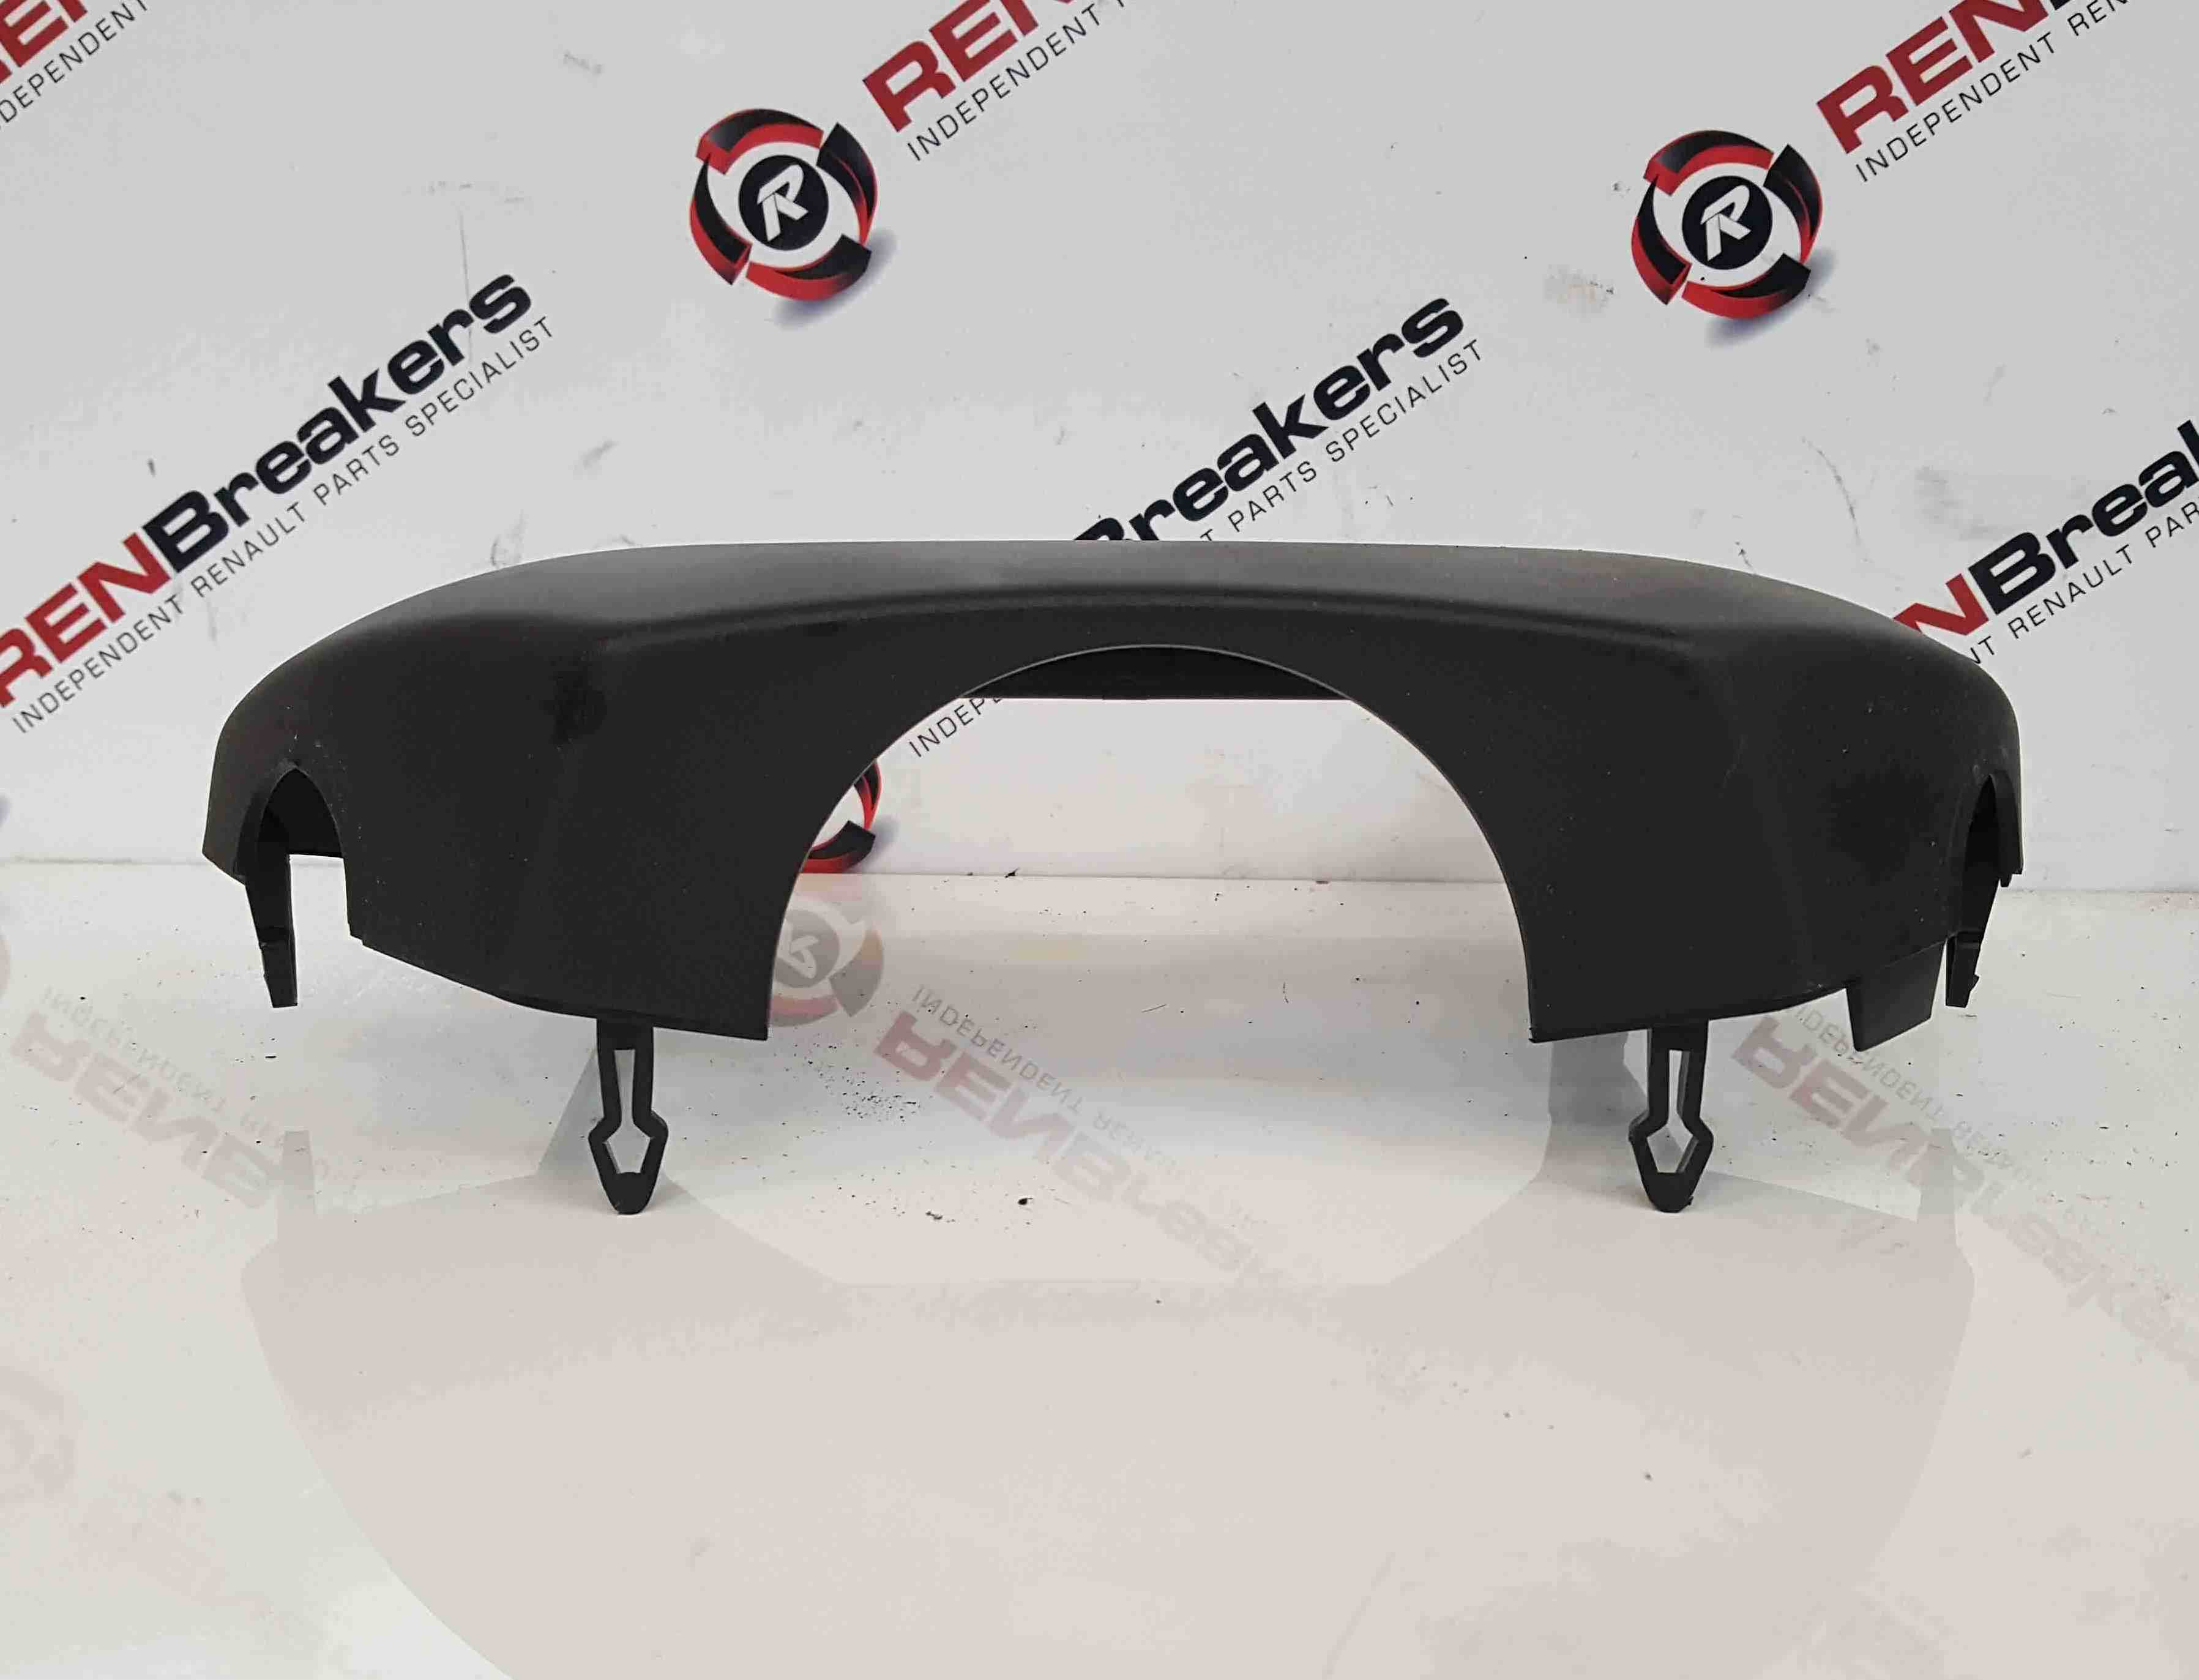 Renault Zoe 2012-2019 Steering Wheel Surround Cowling One Part 484716375R